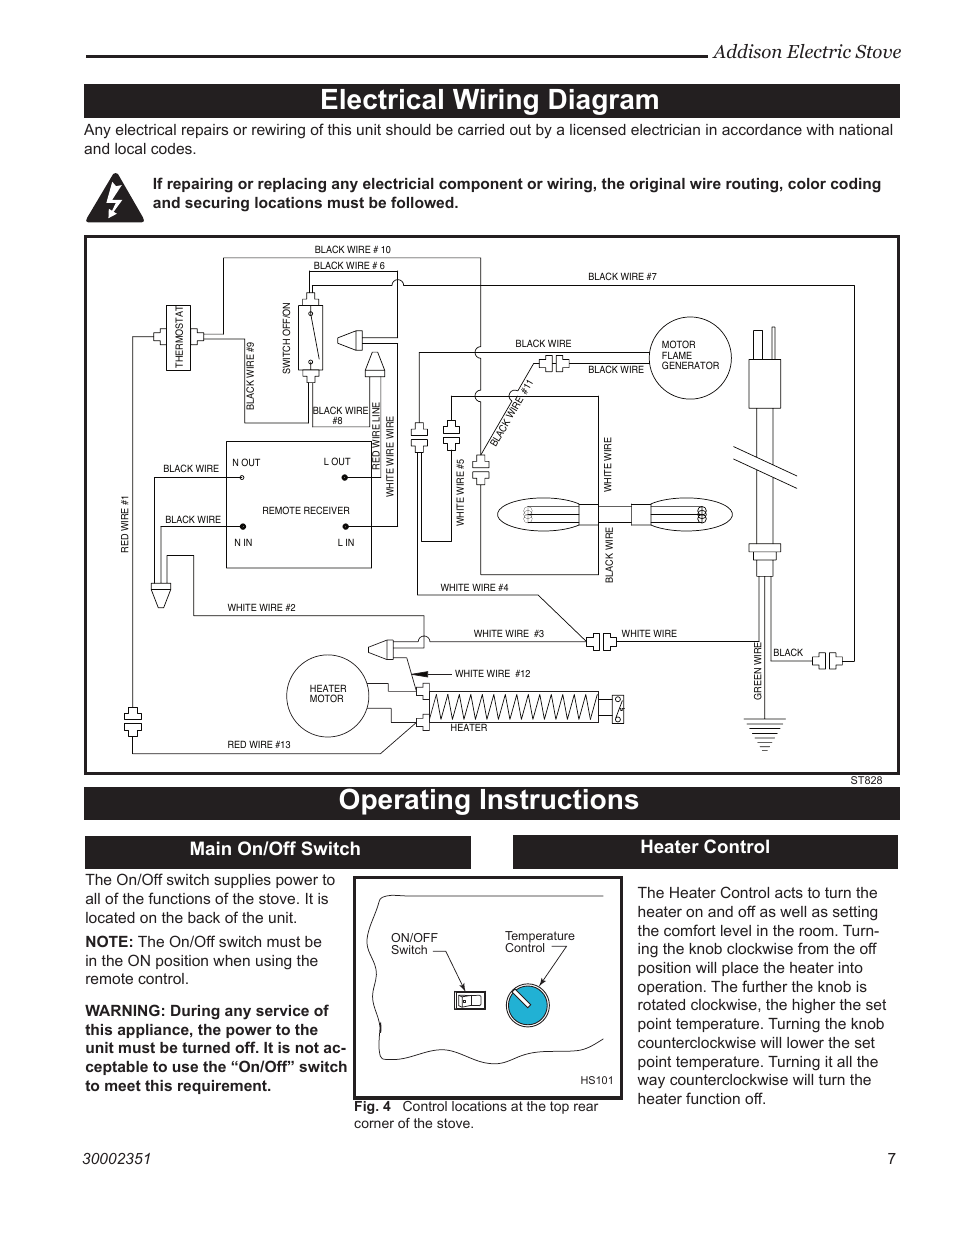 electrical wiring diagram operating instructions addison. Black Bedroom Furniture Sets. Home Design Ideas